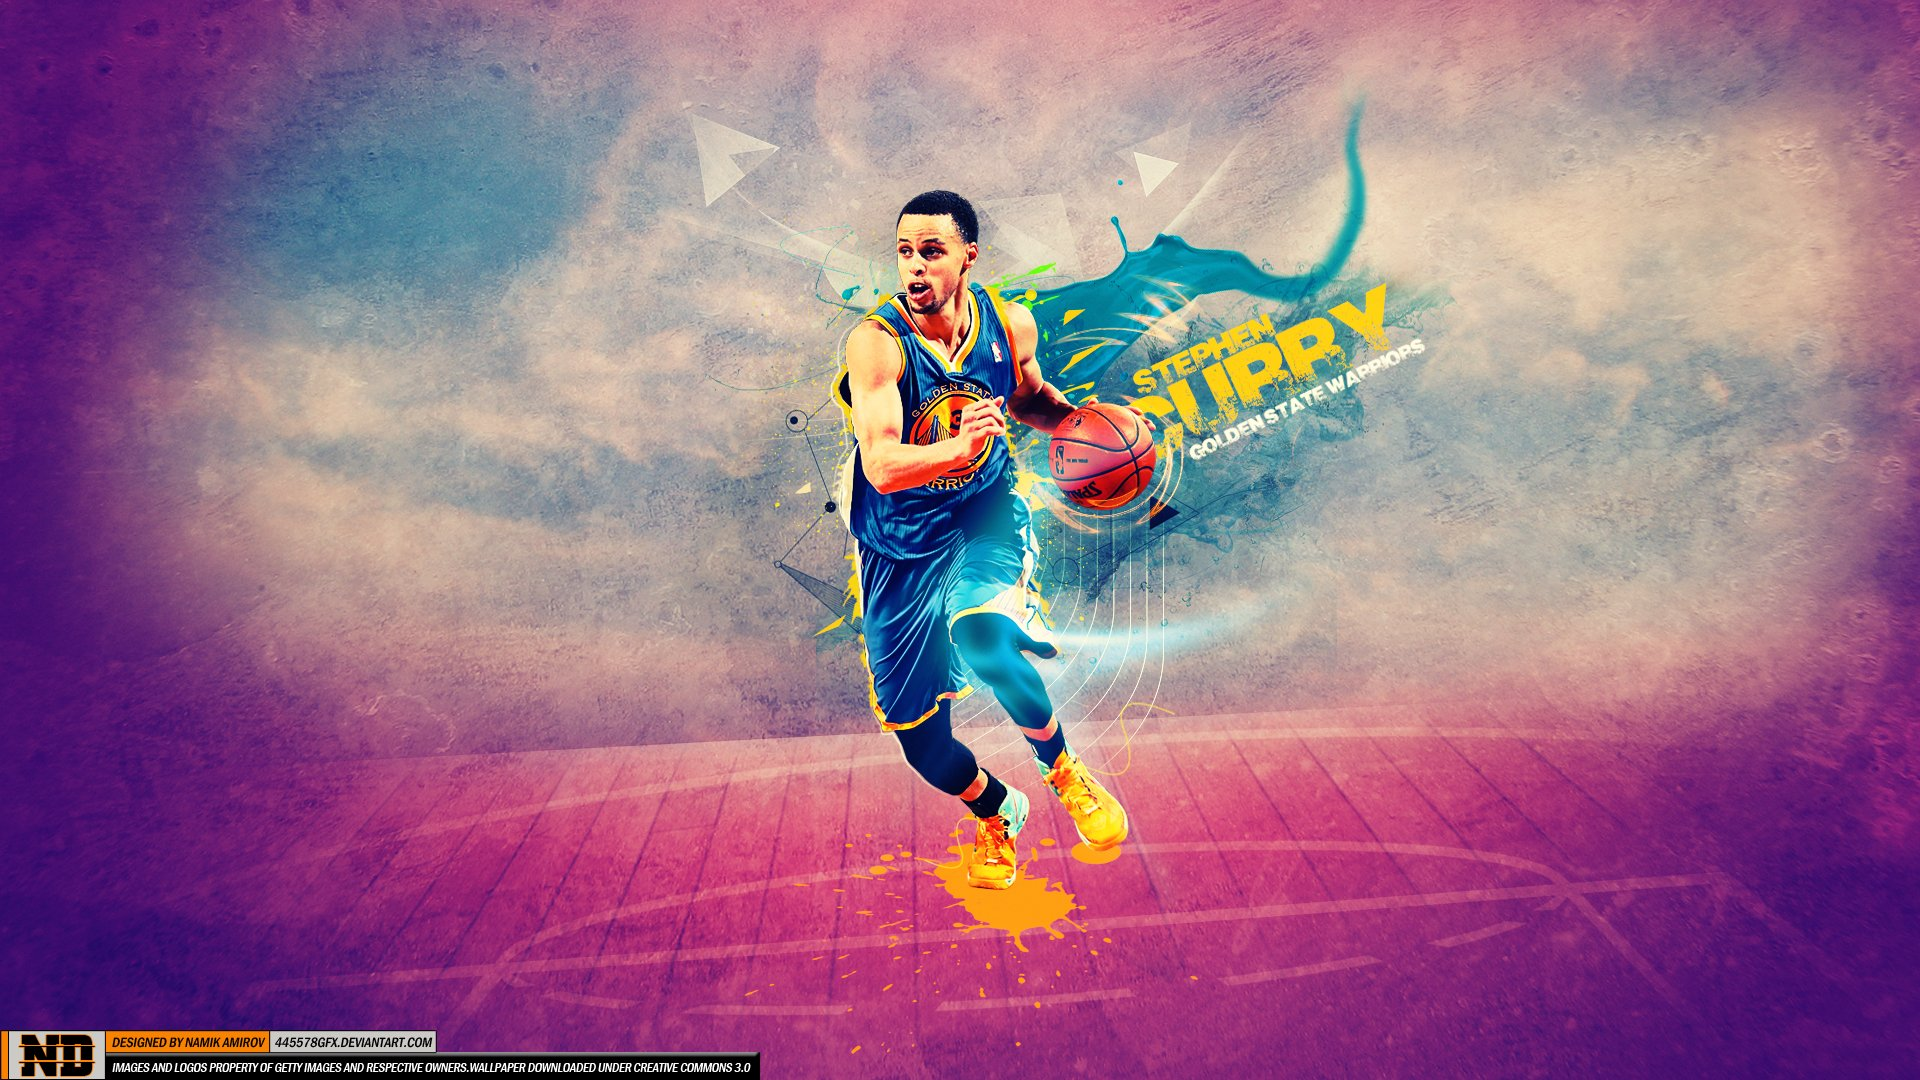 15 Stephen Curry Wallpaper HD ZF8yA 393 Stephen Curry 1920x1080